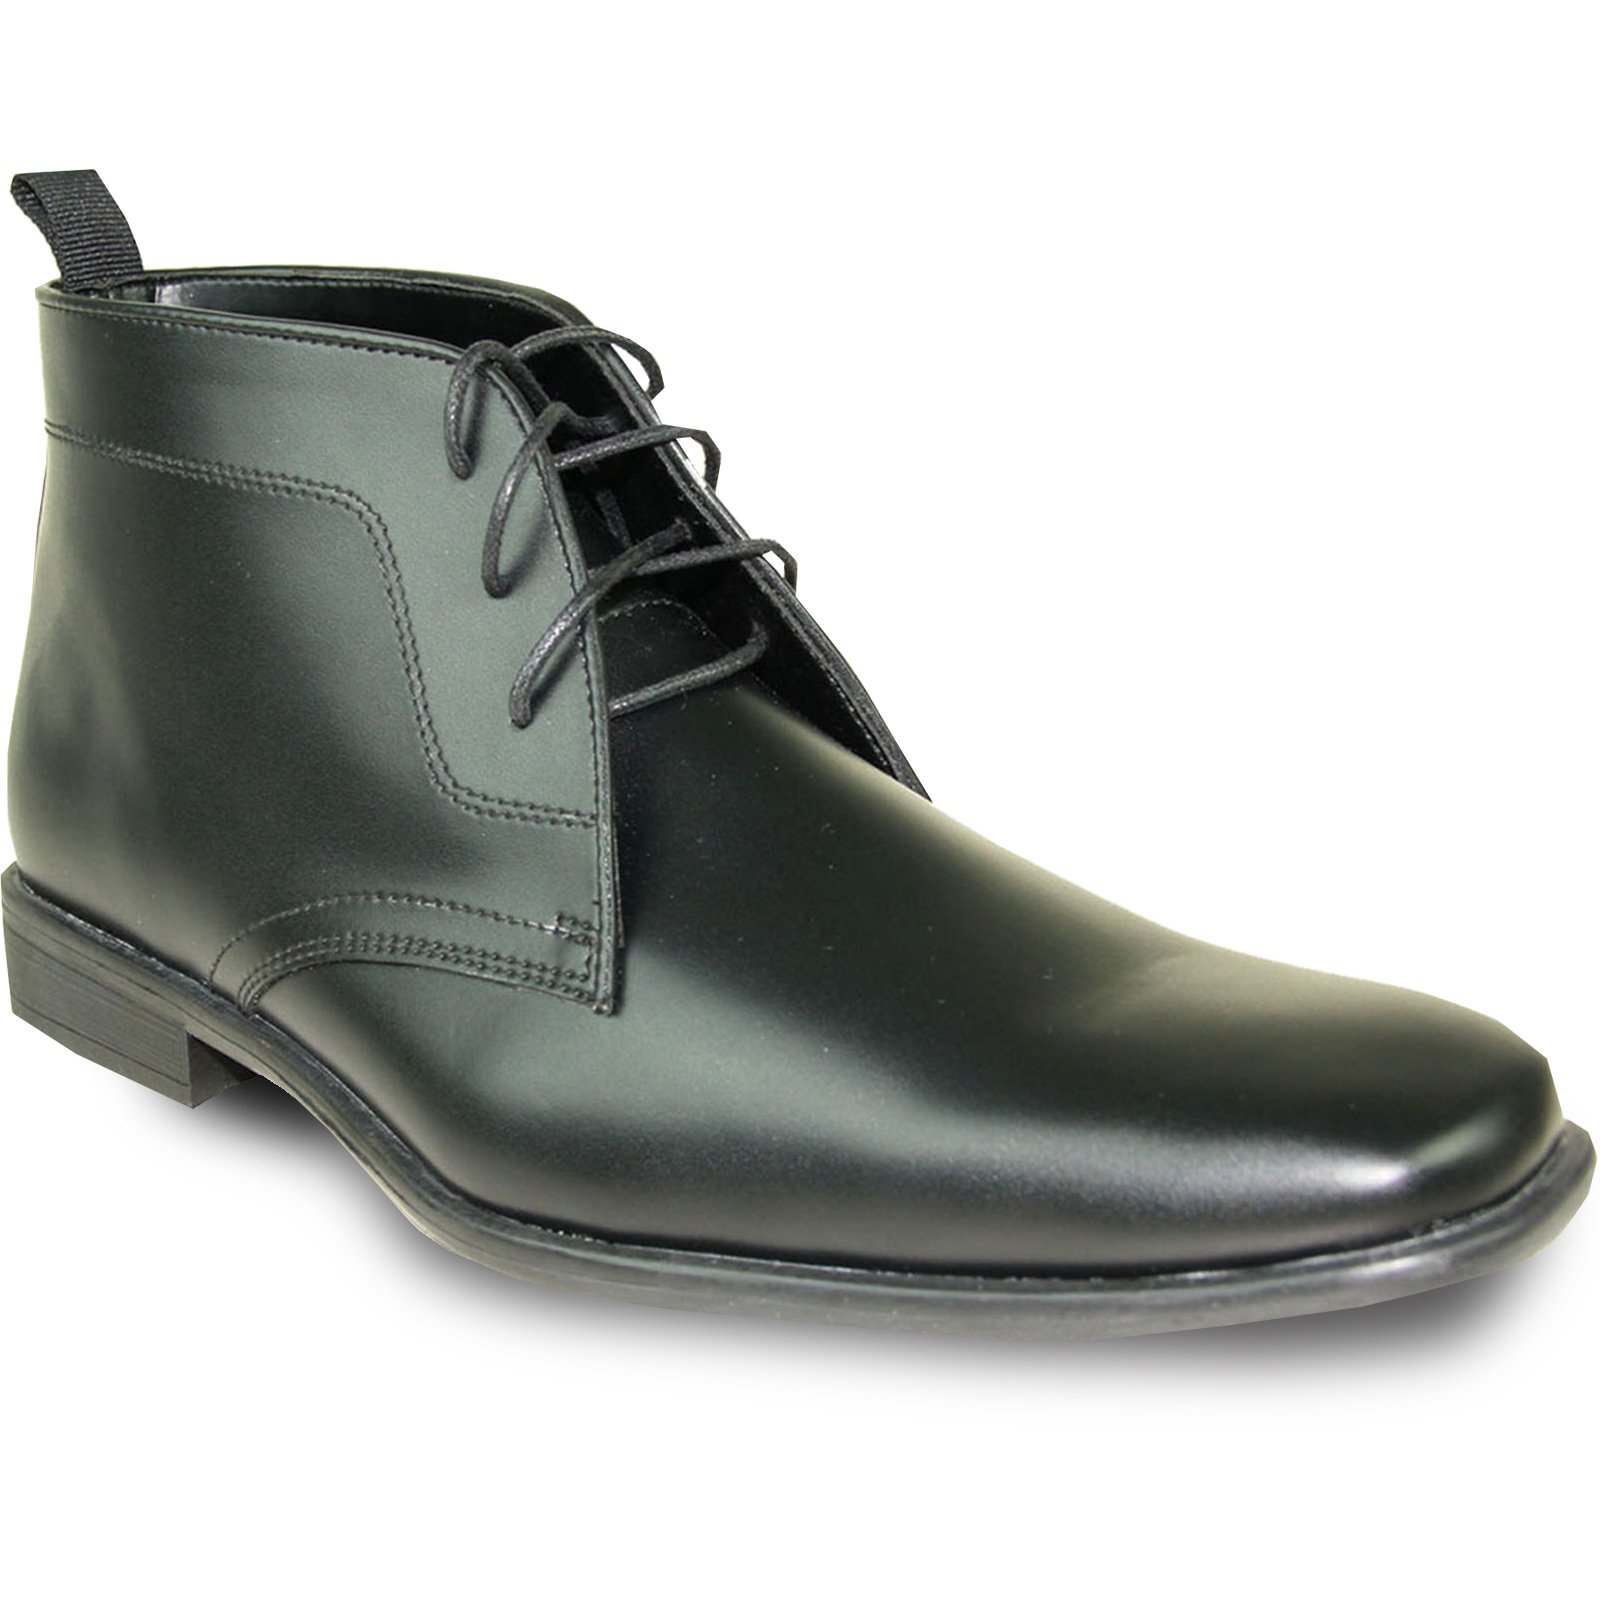 ALLURE MEN Dress Boot AL02 Fashion Tuxedo for Wedding, Prom and Formal Events with Wrinkle Free Material Black 8.5M